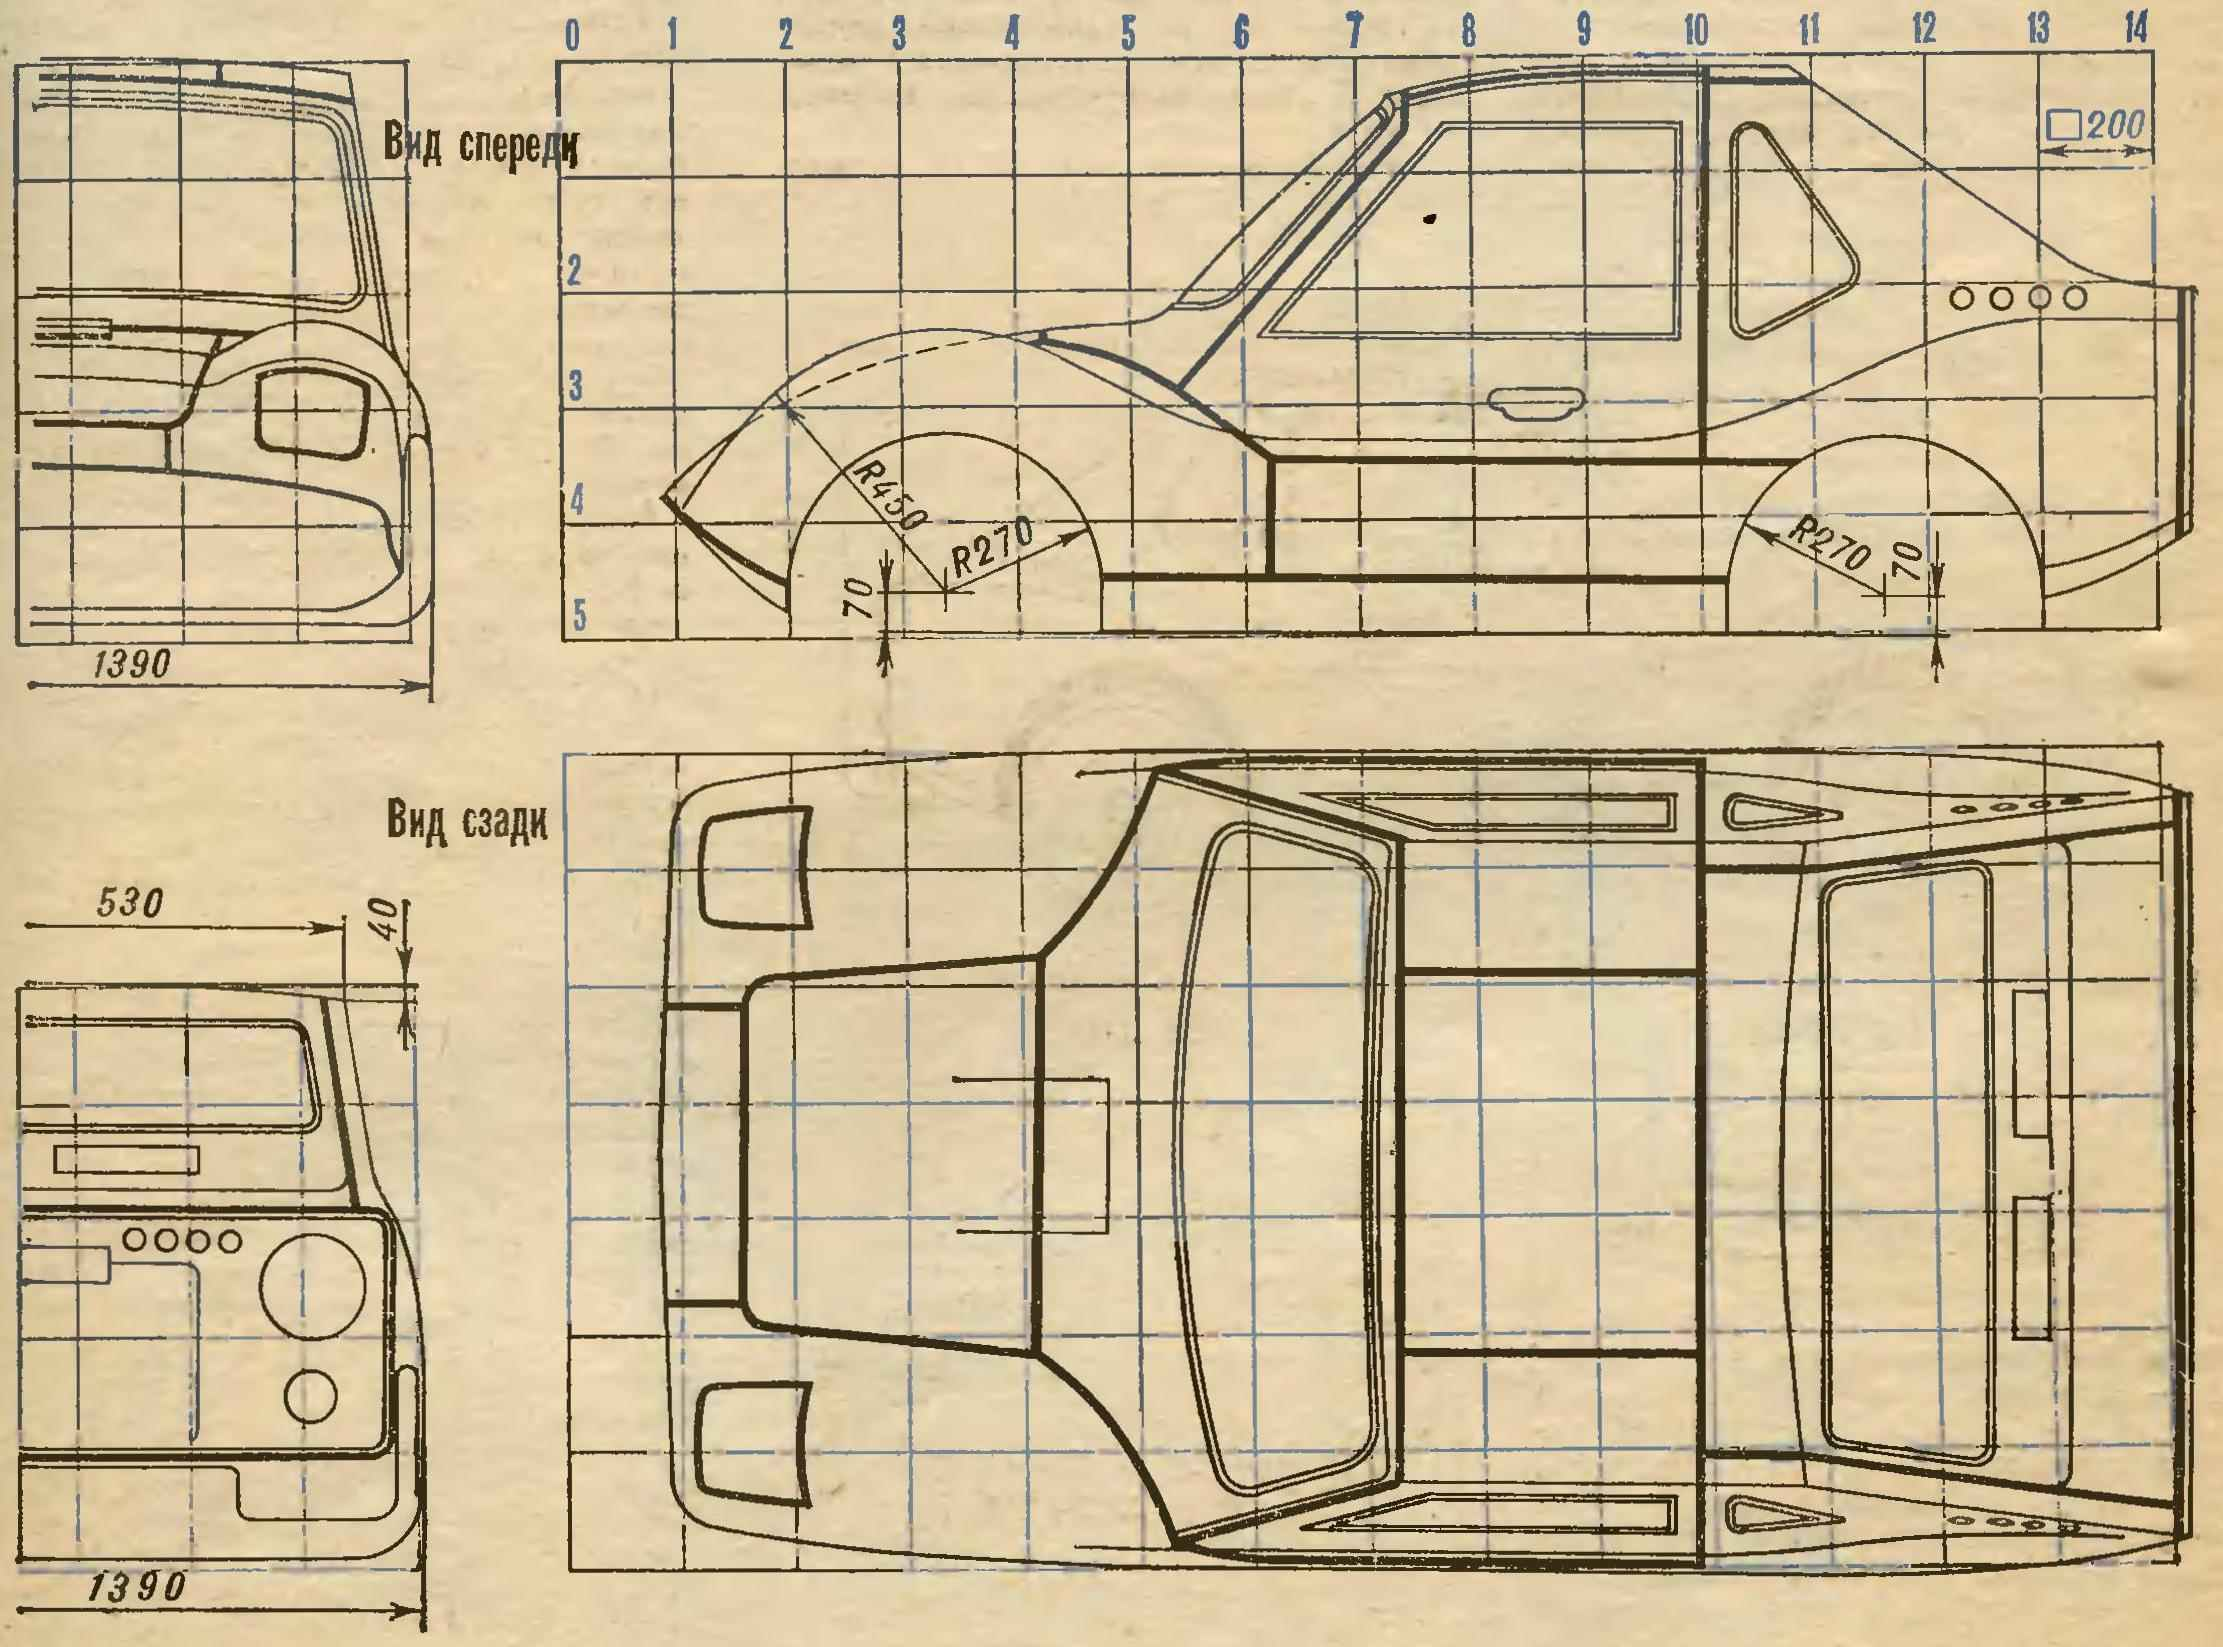 Fig. 4. The breakdown of the body panel